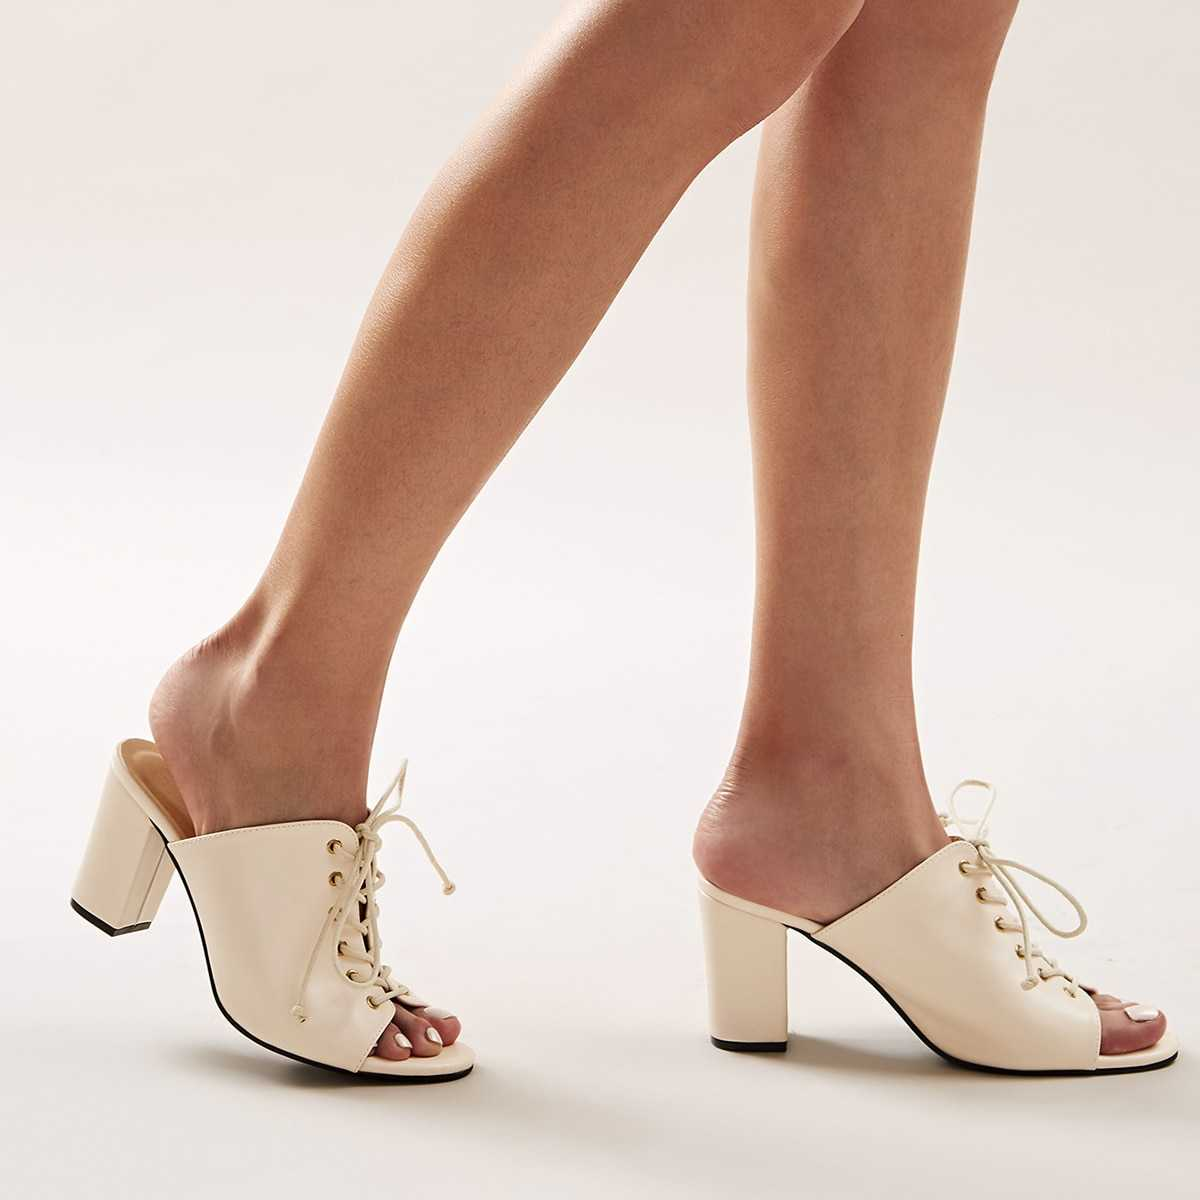 Open Toe Lace-up Front Chunky Heeled Mules in Apricot by ROMWE on GOOFASH